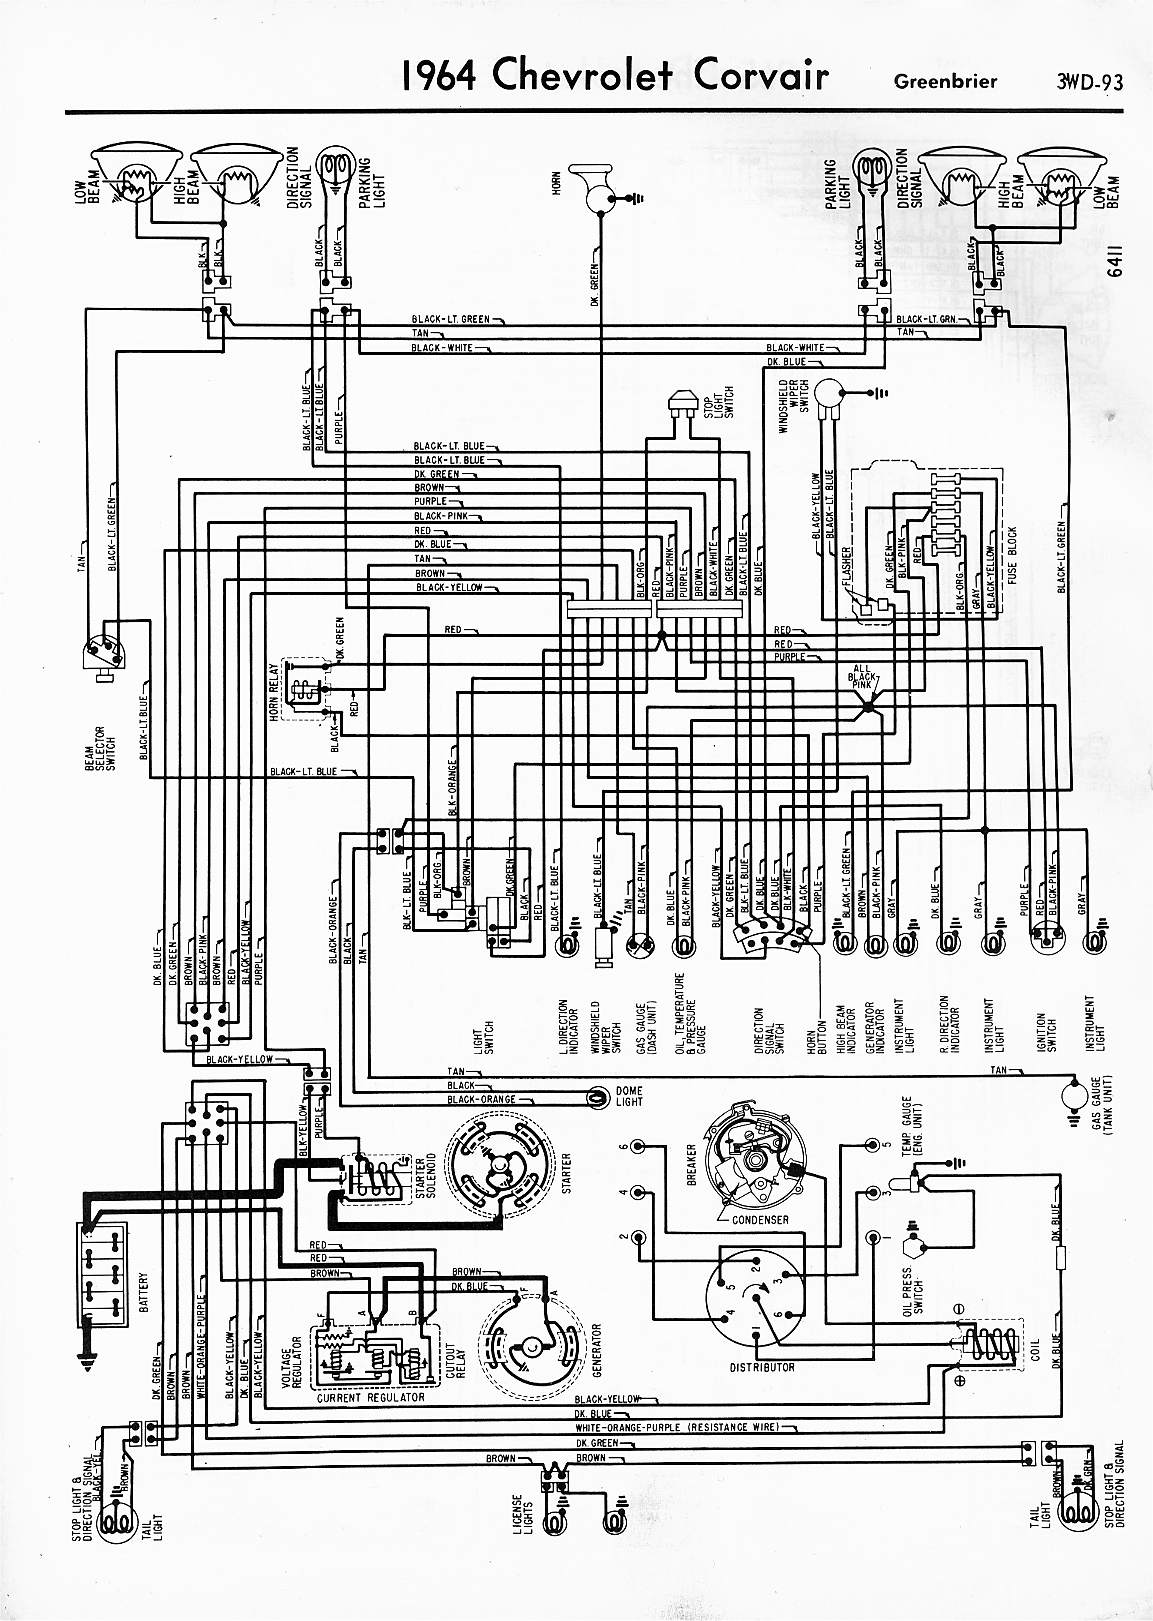 64 impala headlight wiring diagram 57 - 65 chevy wiring diagrams 2007 impala headlight wiring diagram